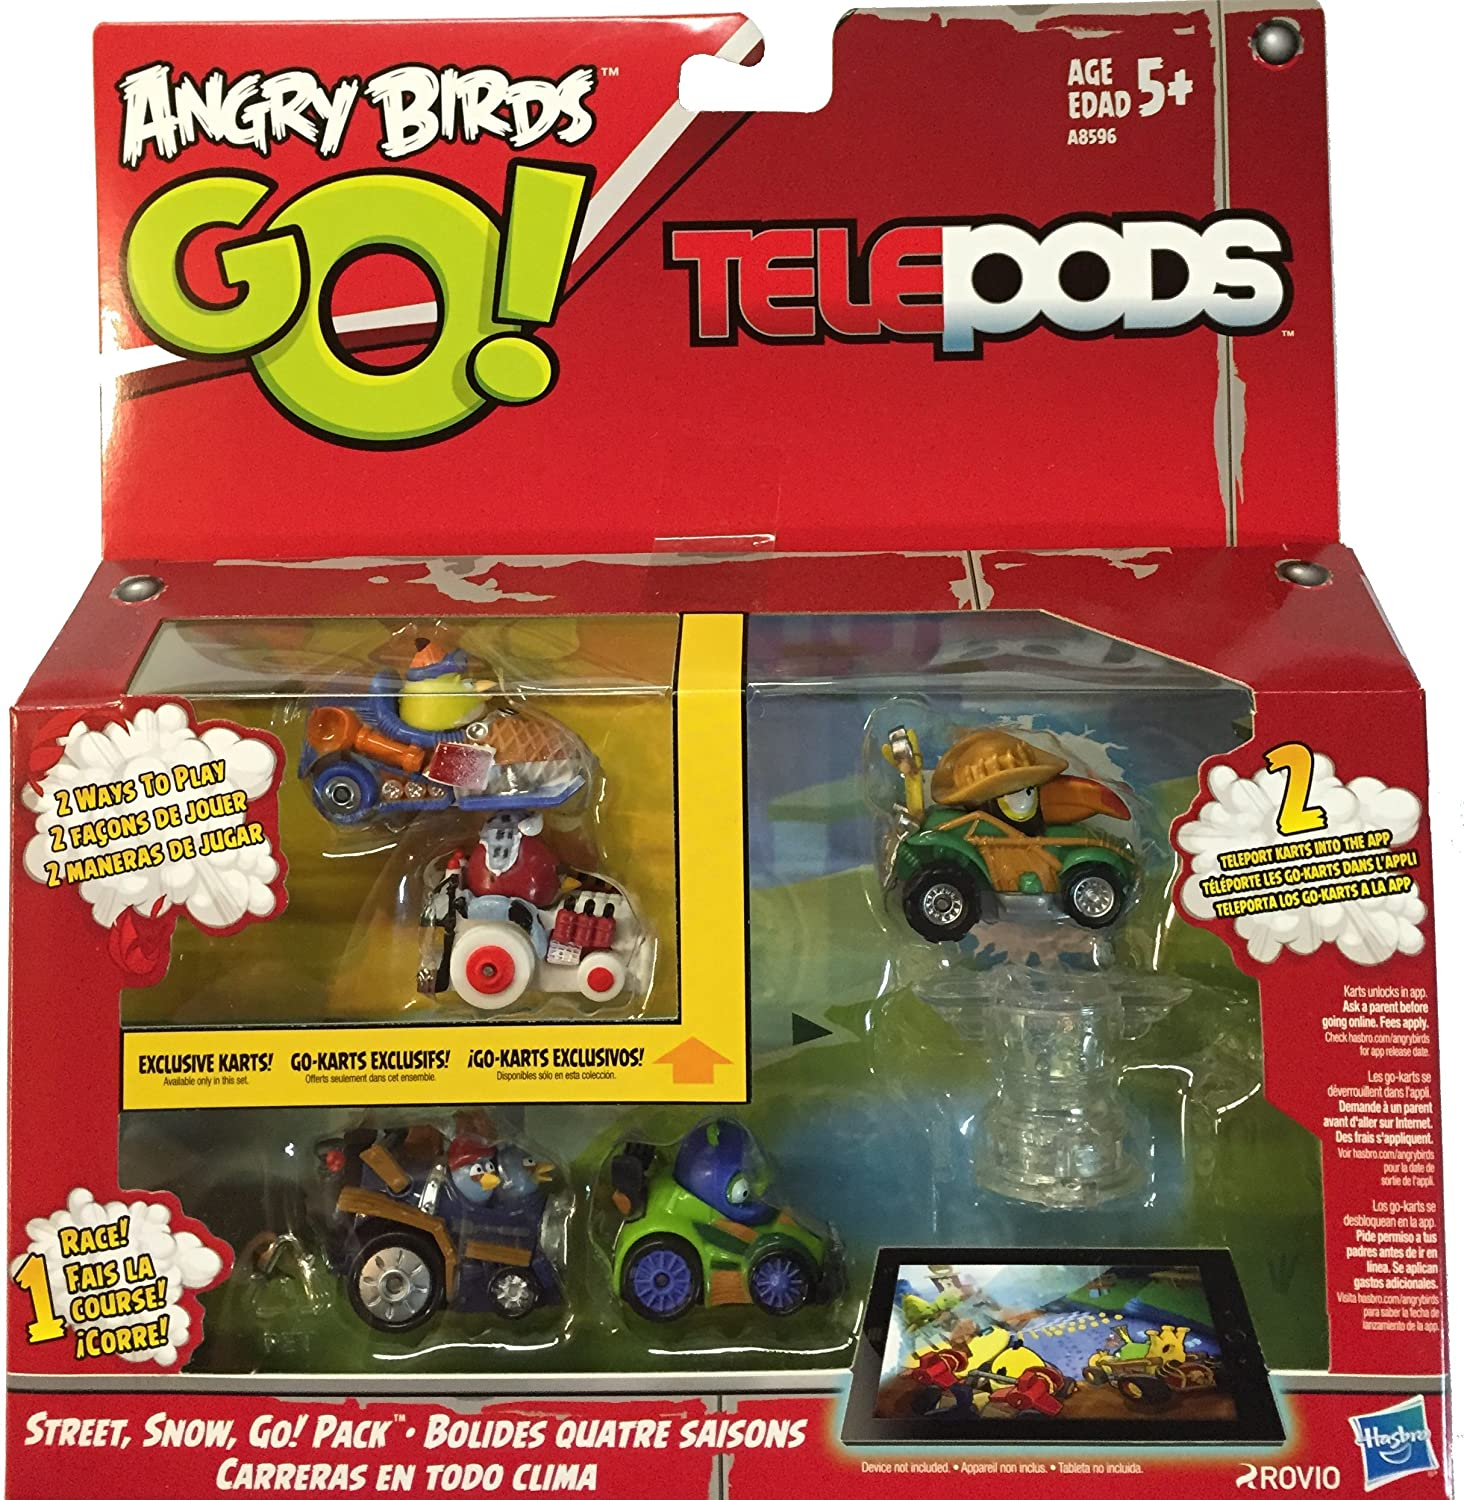 Angry Birds Go Telepods Street, Snow, Go! Pack Exclusive Karts B018Q2PTMM